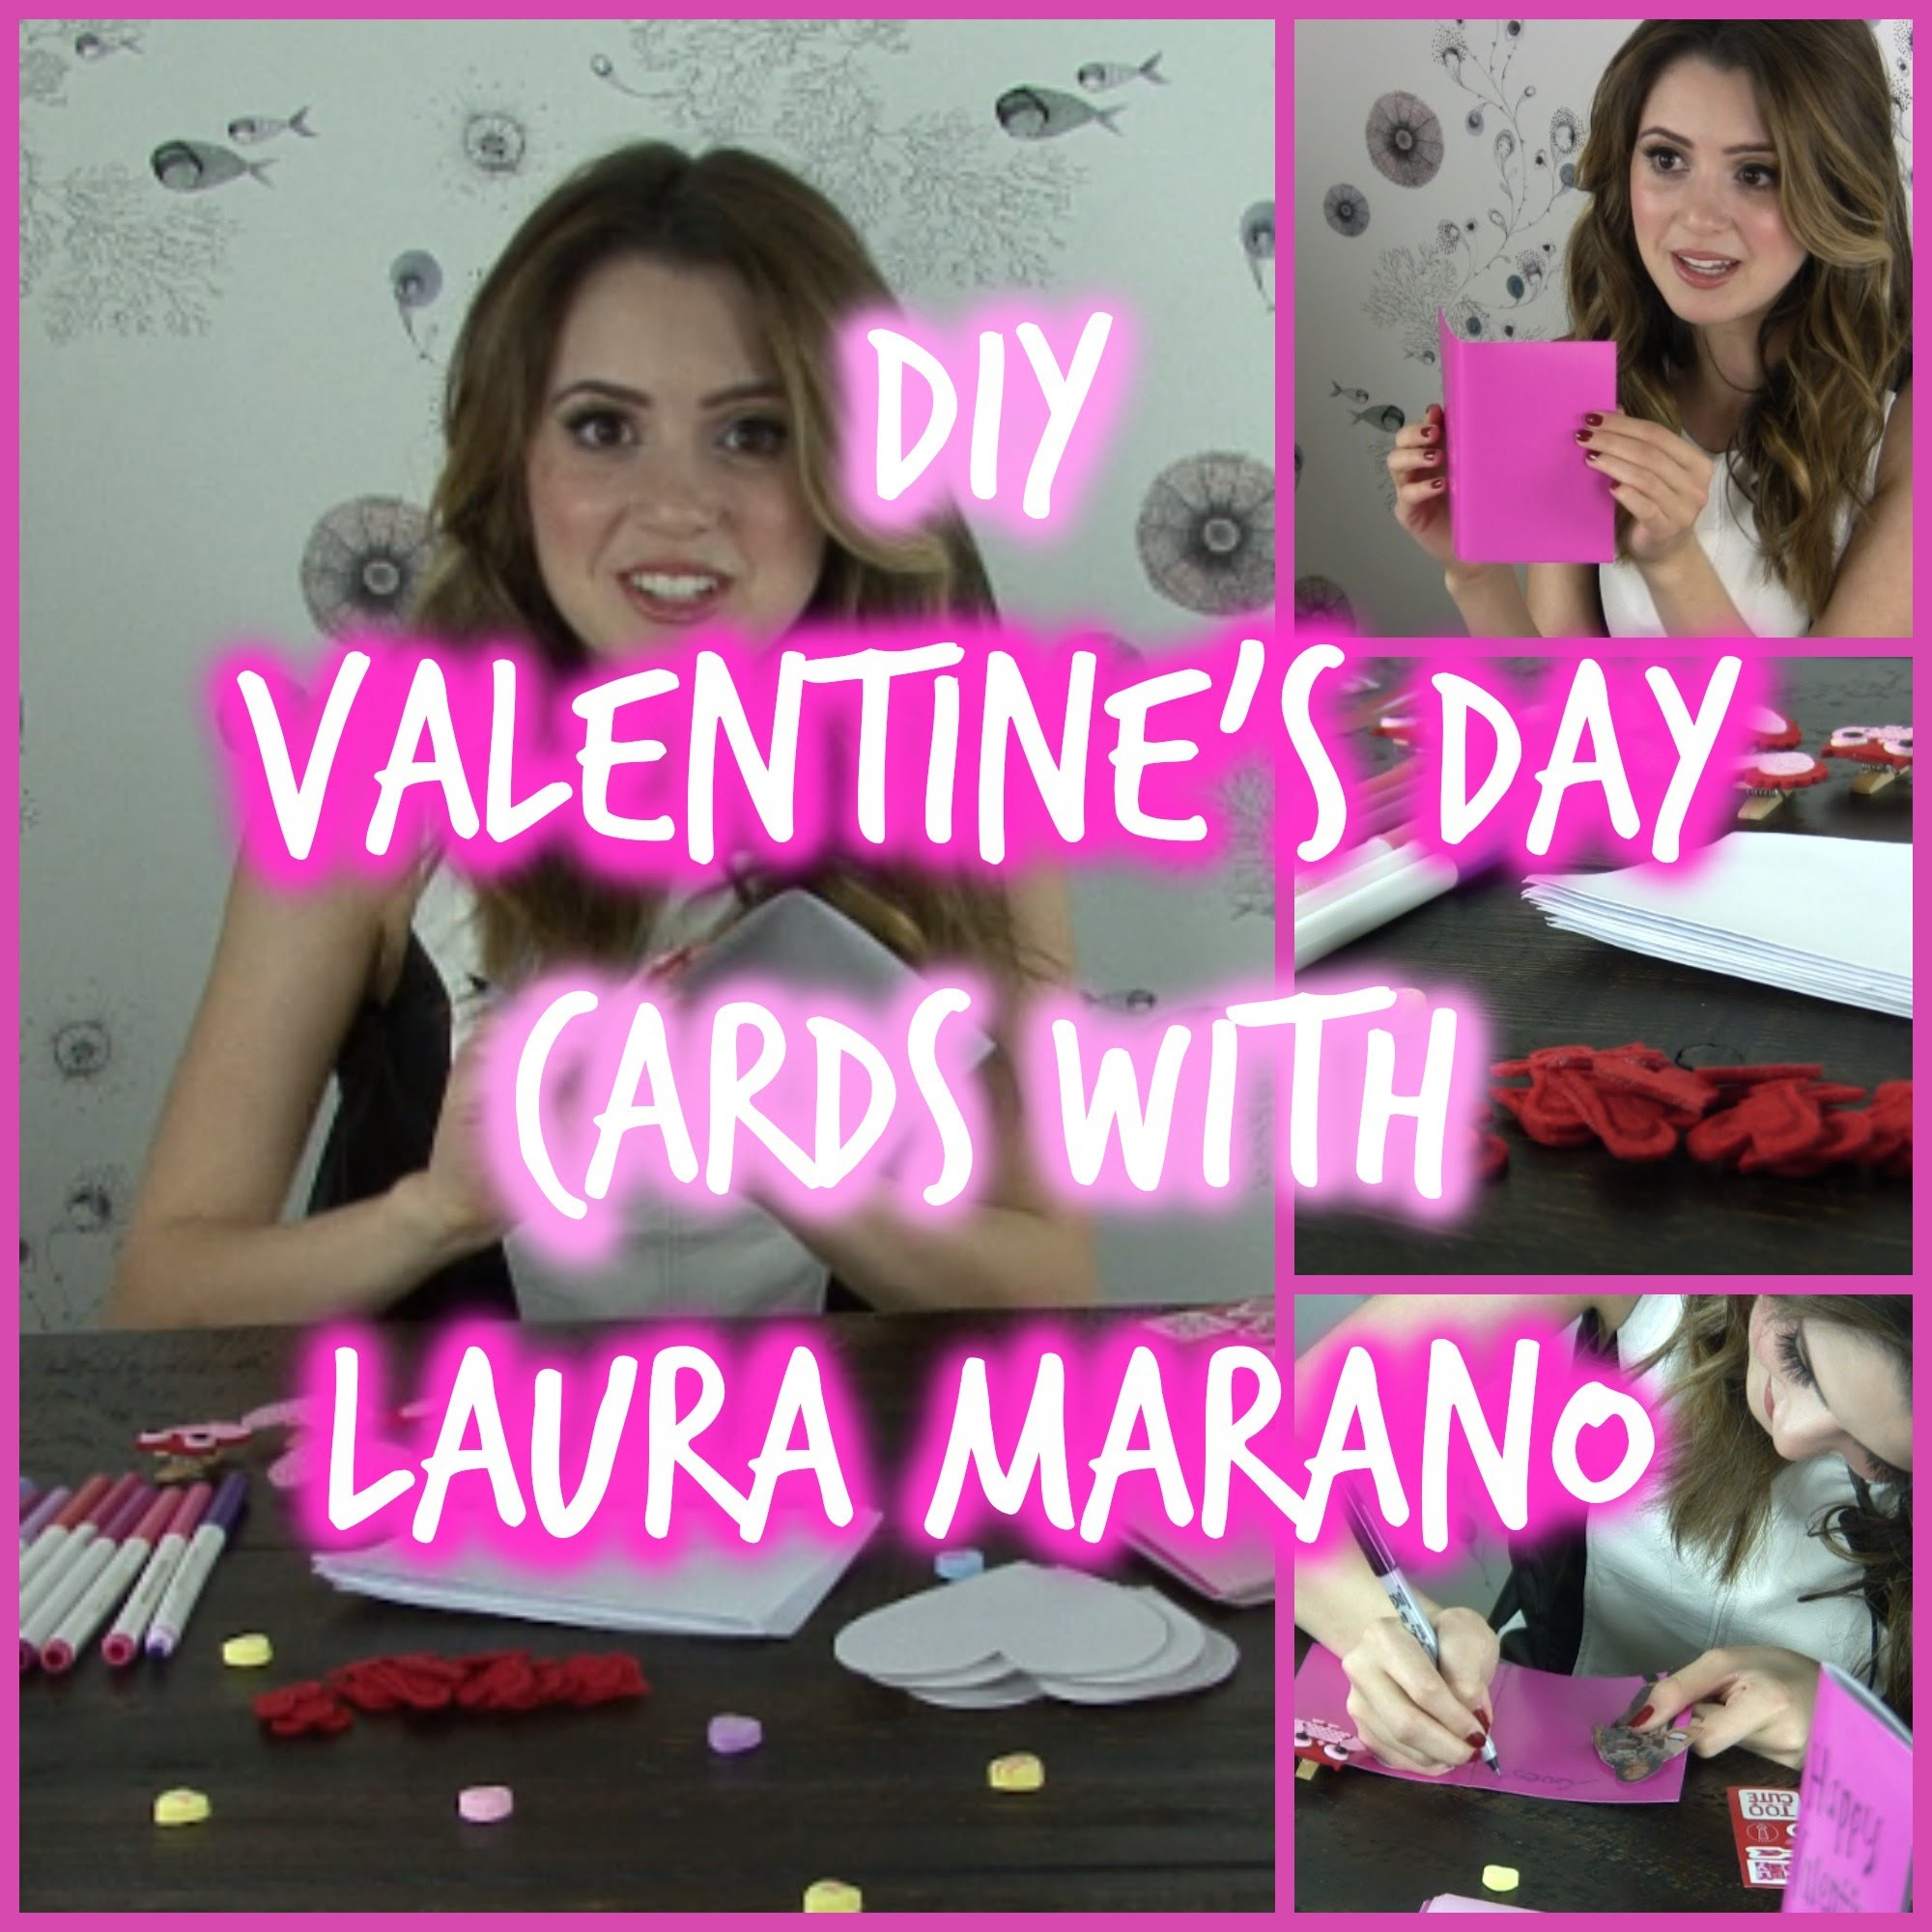 DIY Valentine's Day Cards with Laura Marano